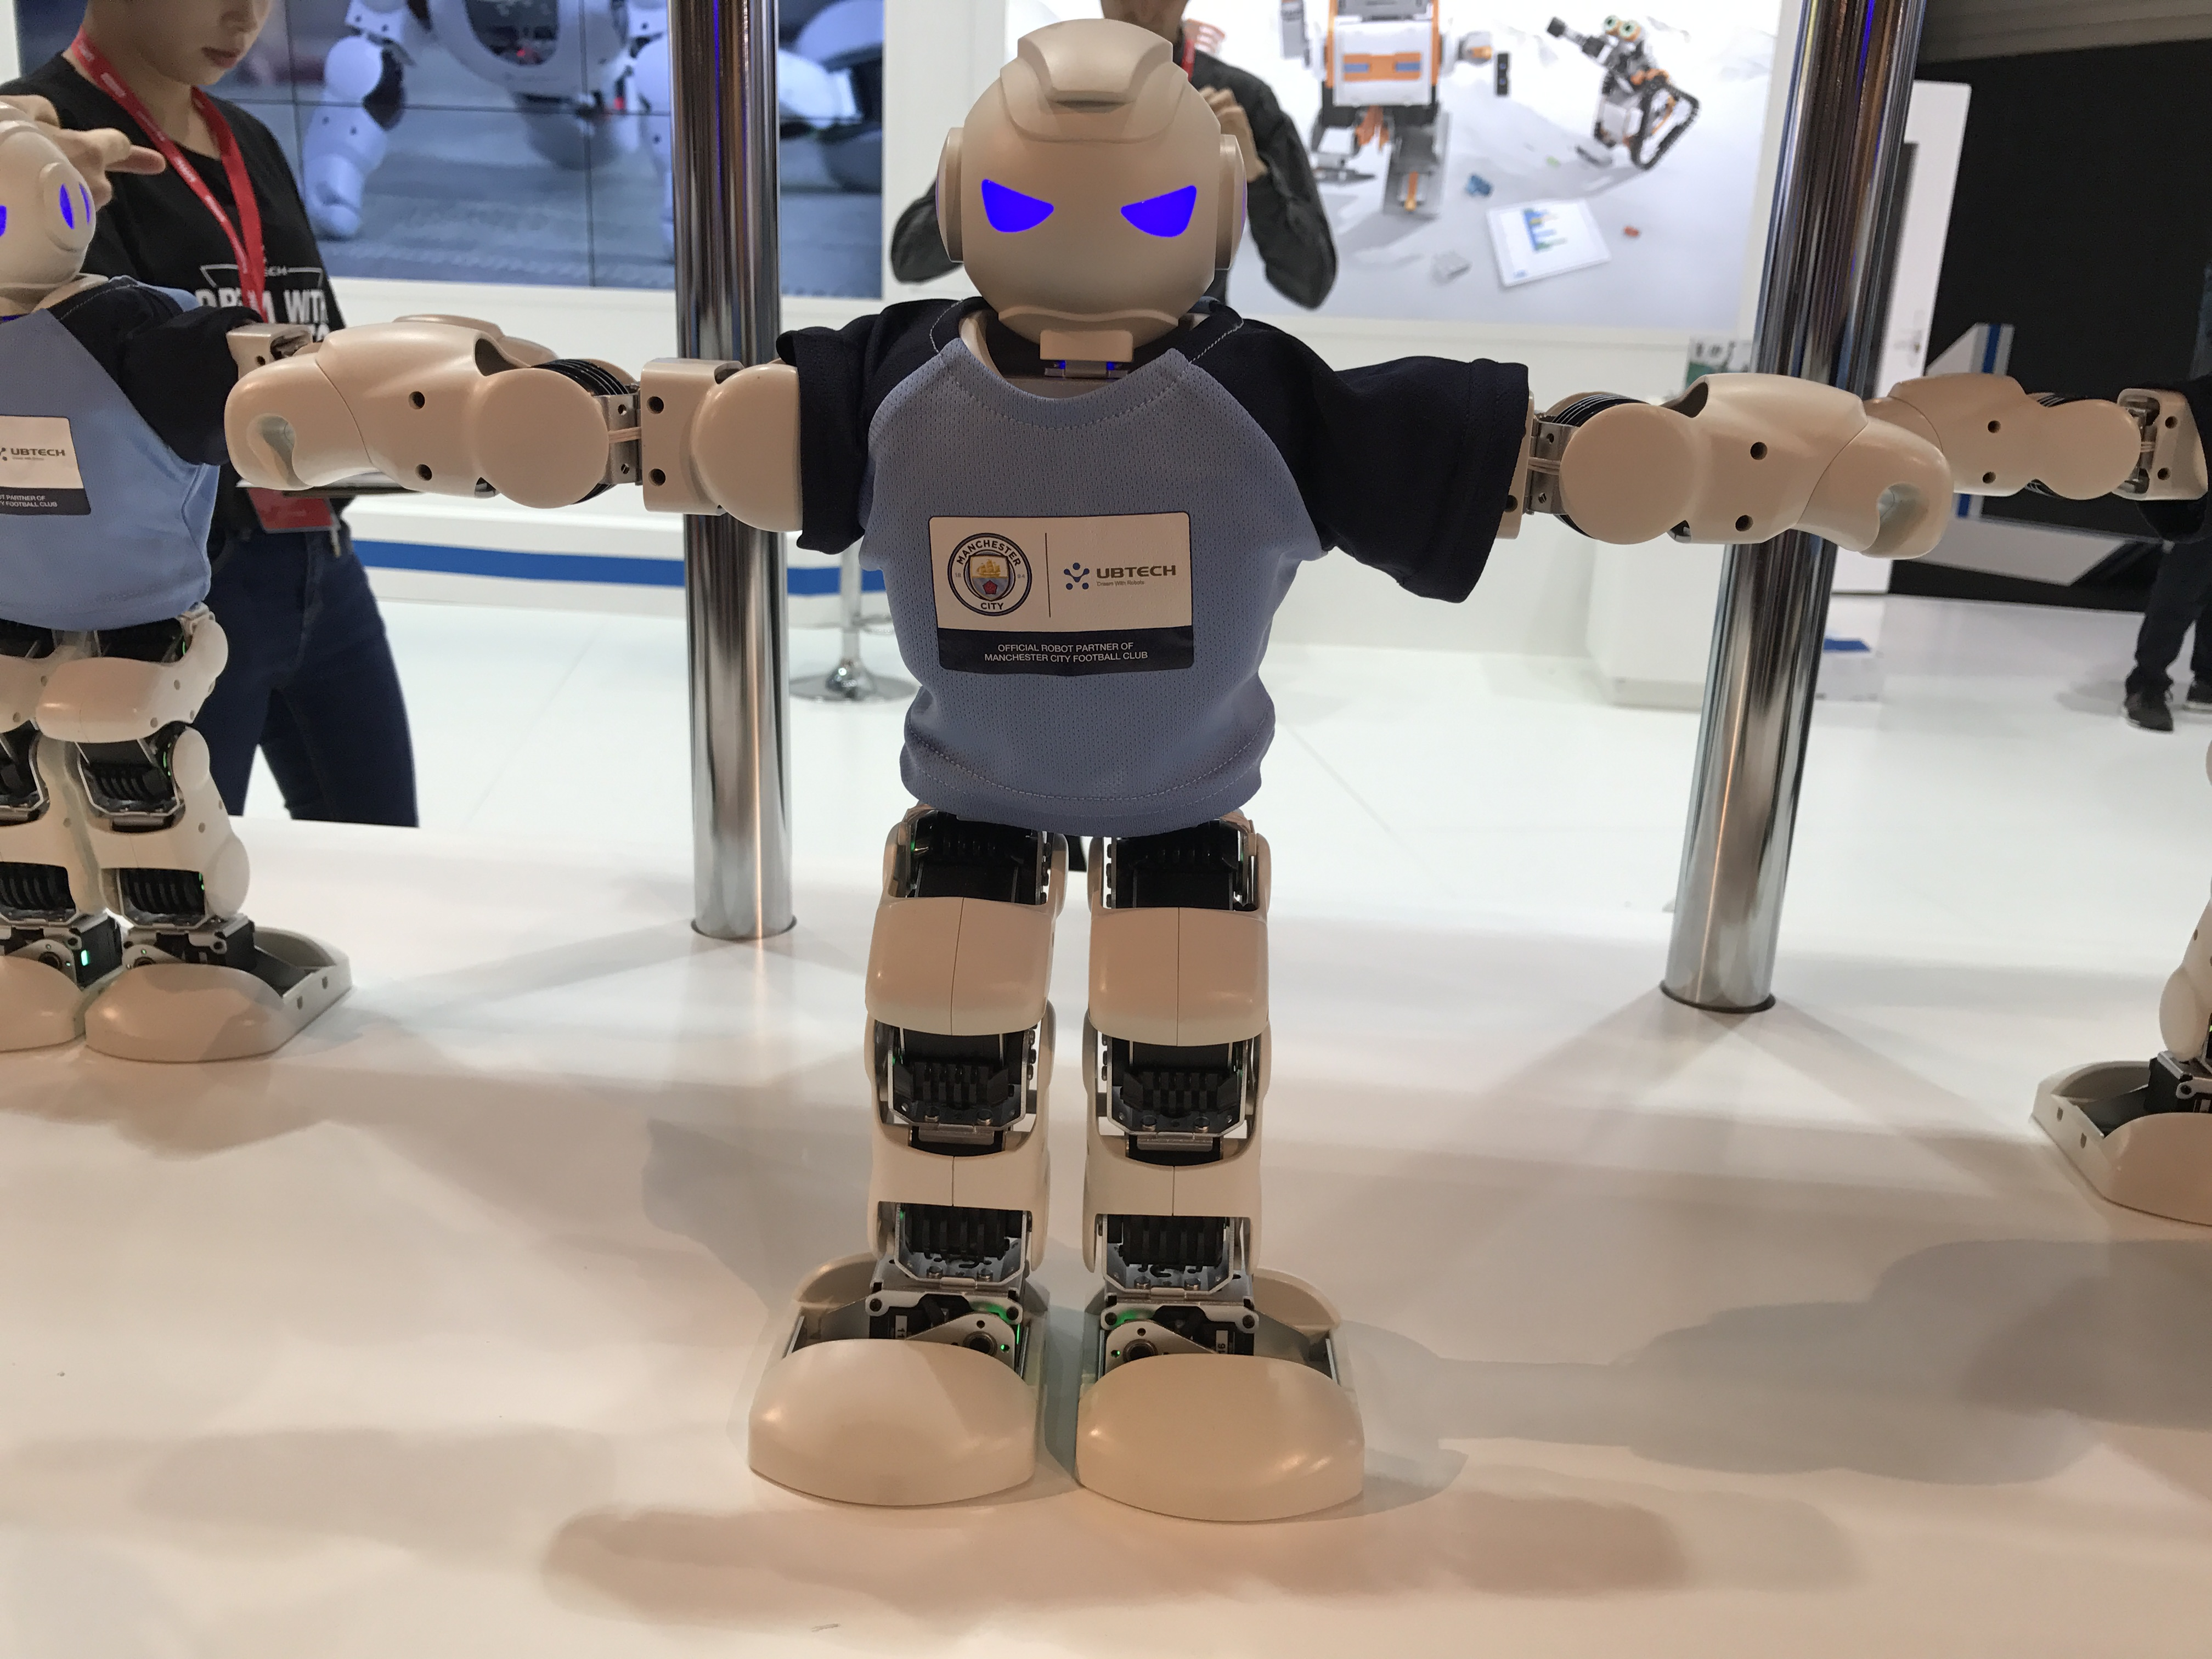 Robots on display at the IFA conference